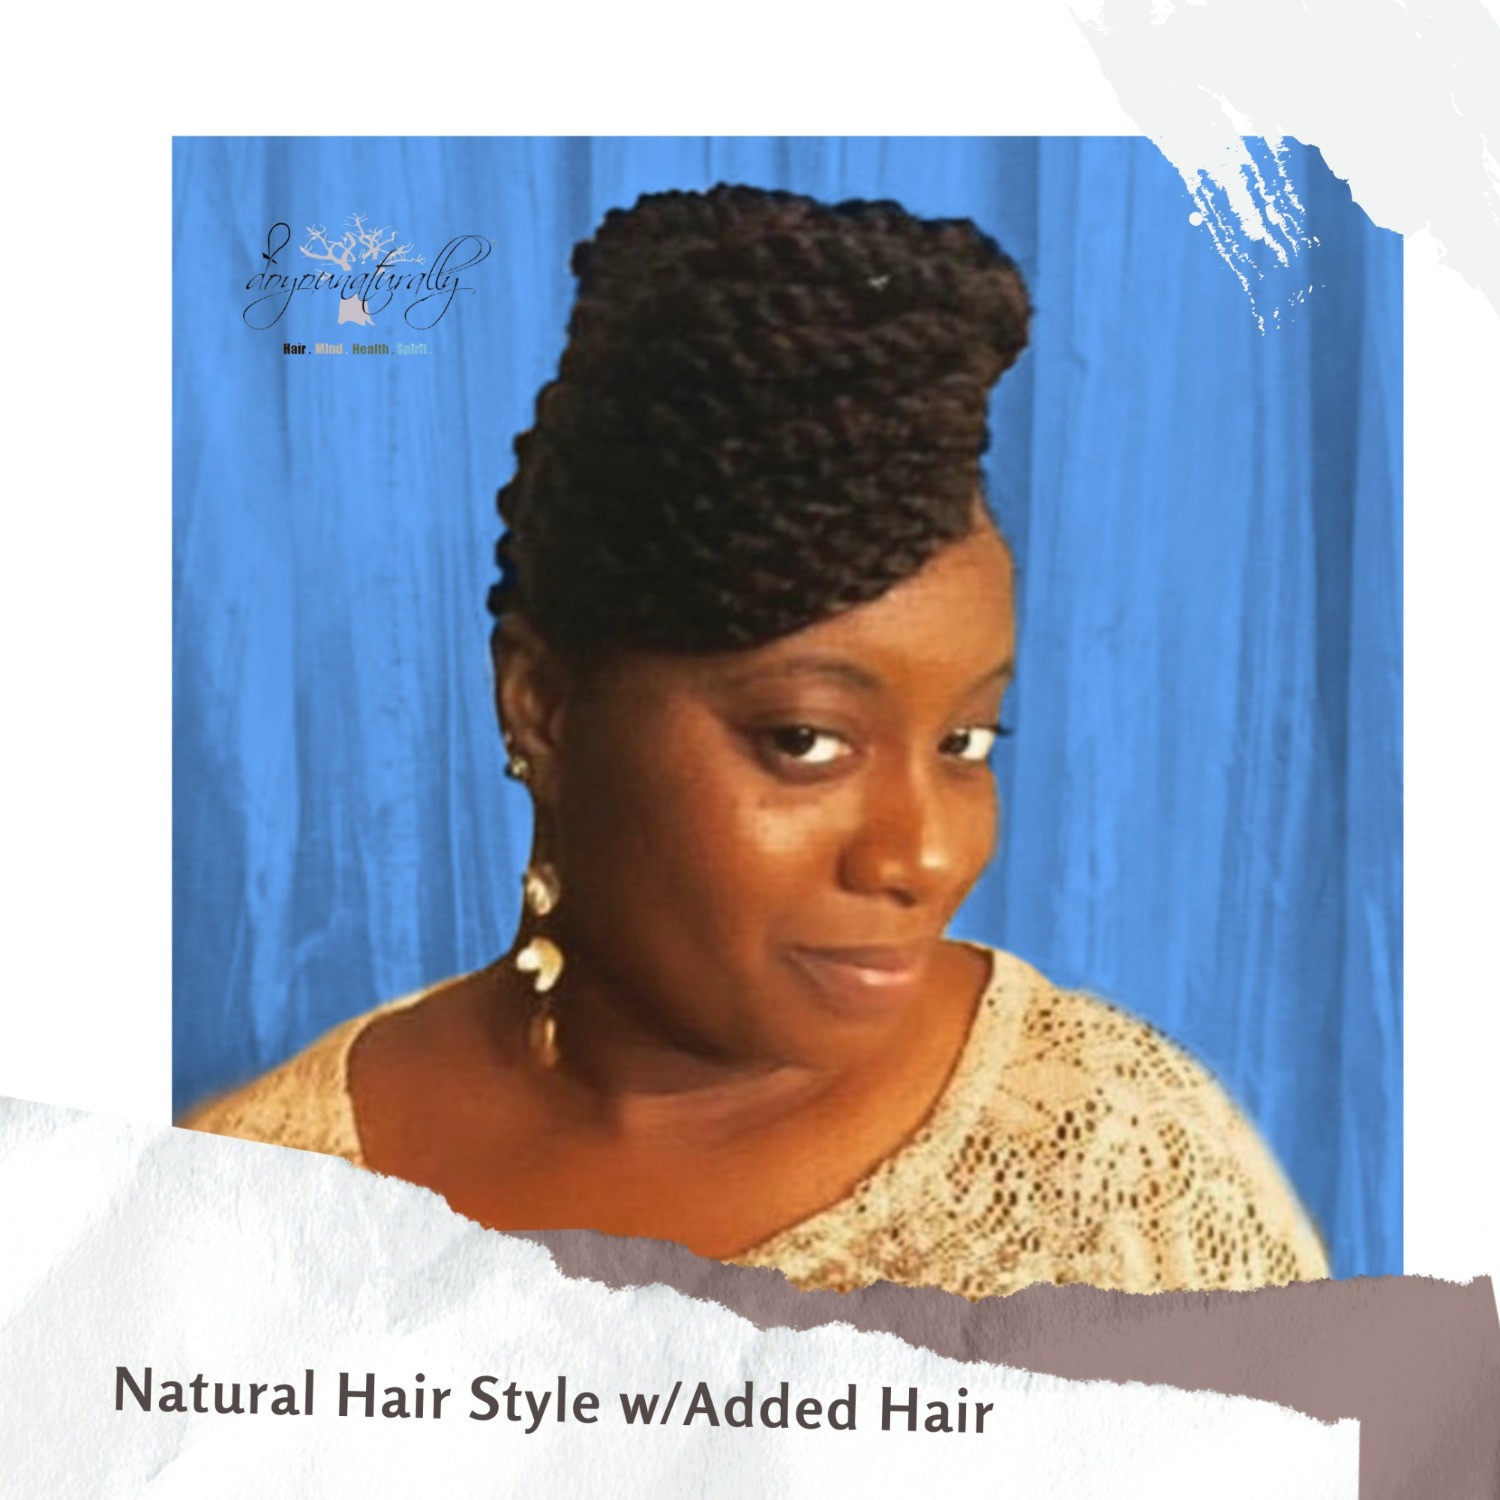 Natural Hair Styling with Added Hair